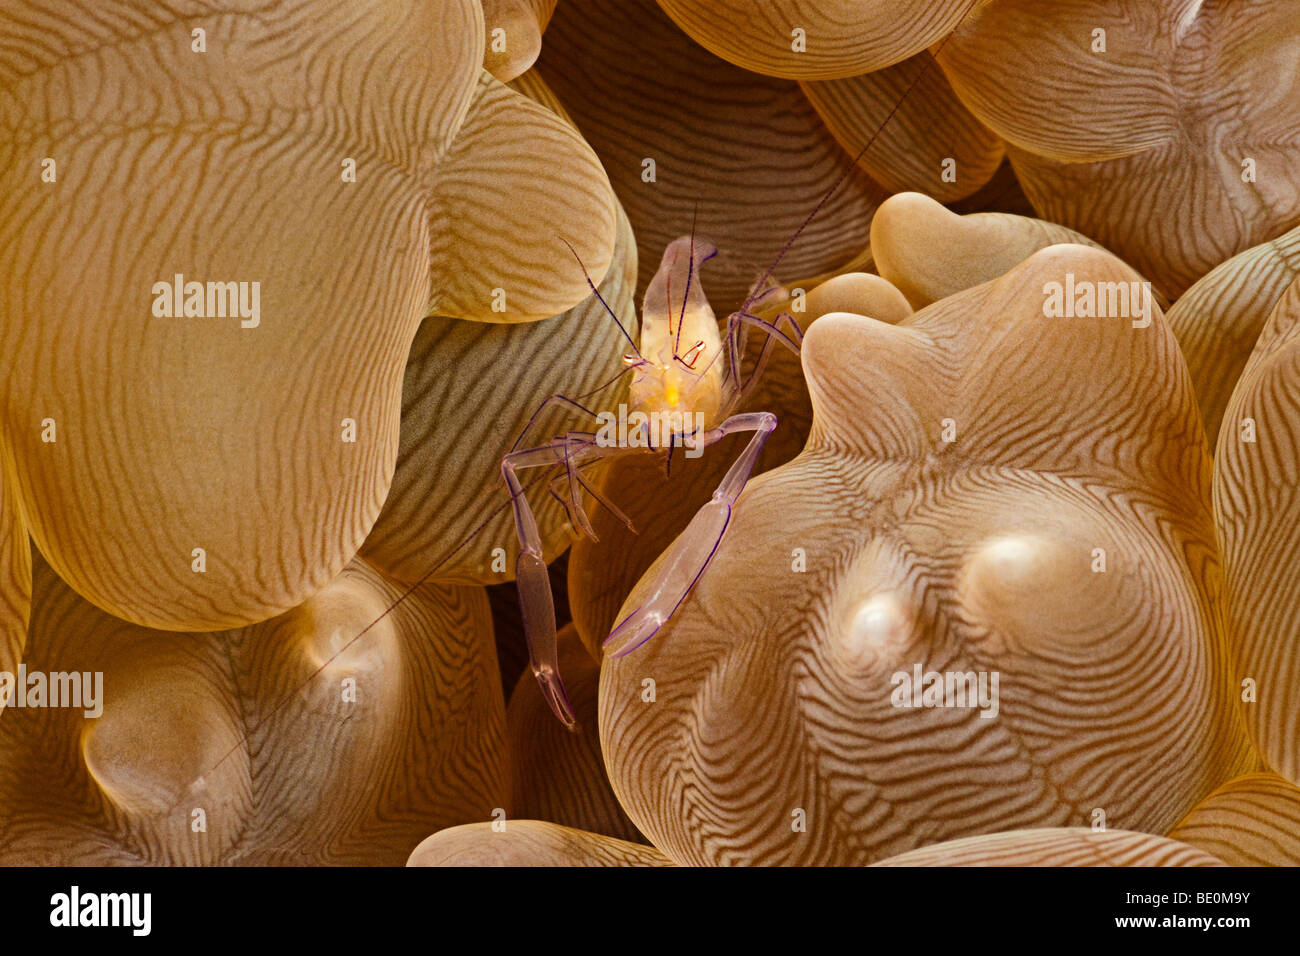 Bubble coral shrimp, Vir philippinensis, on bubble coral,  sp. Philippines. - Stock Image